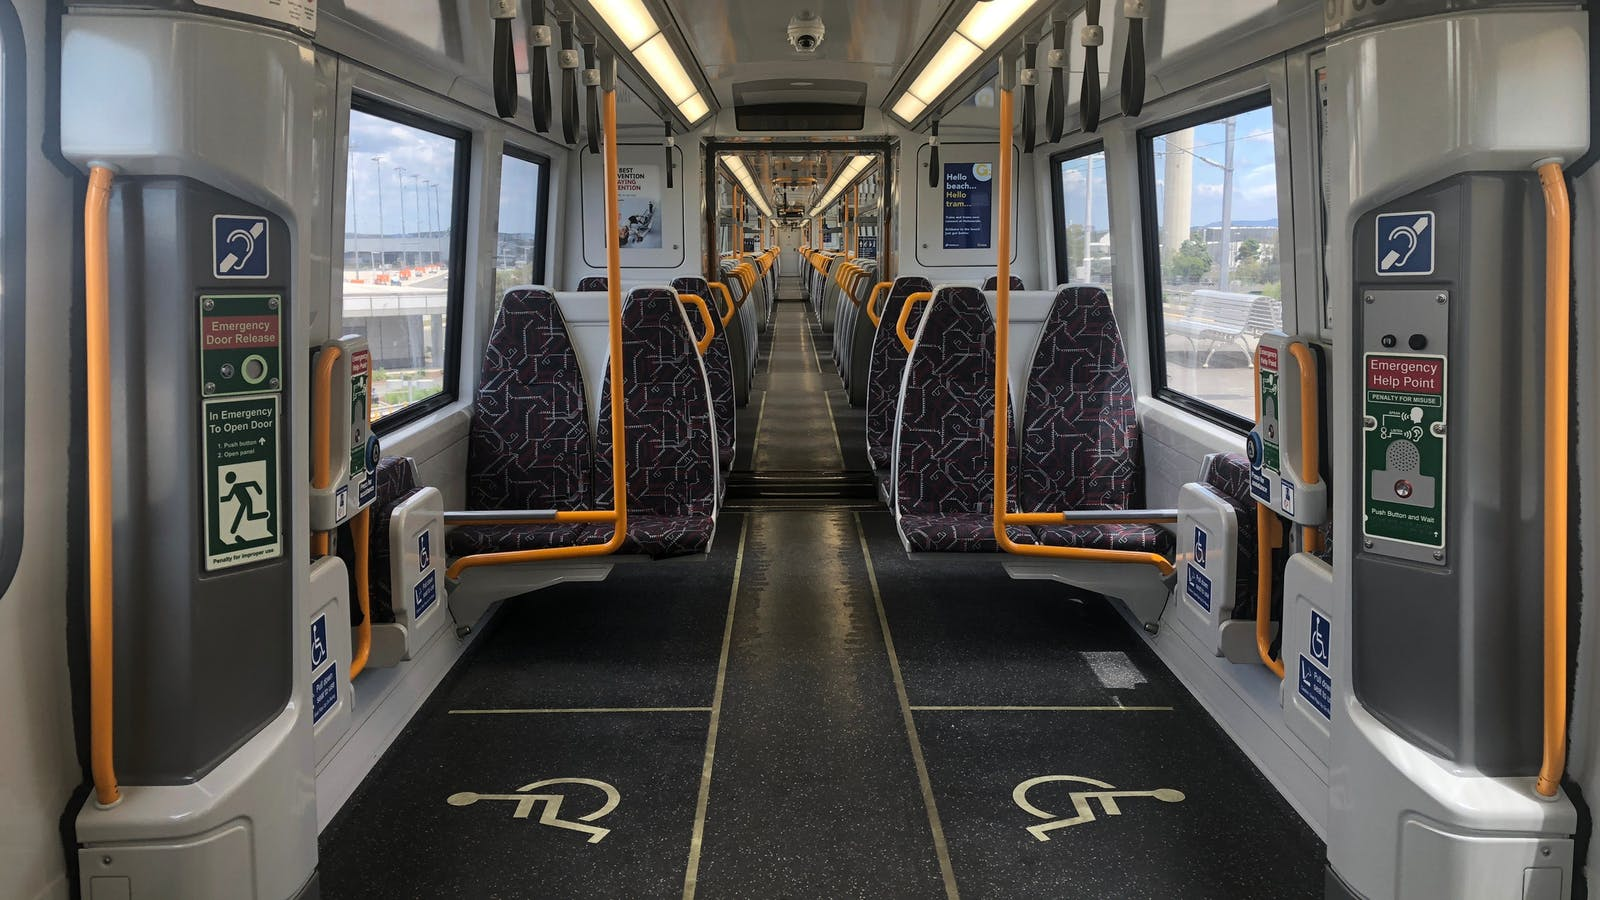 Disability access on trains